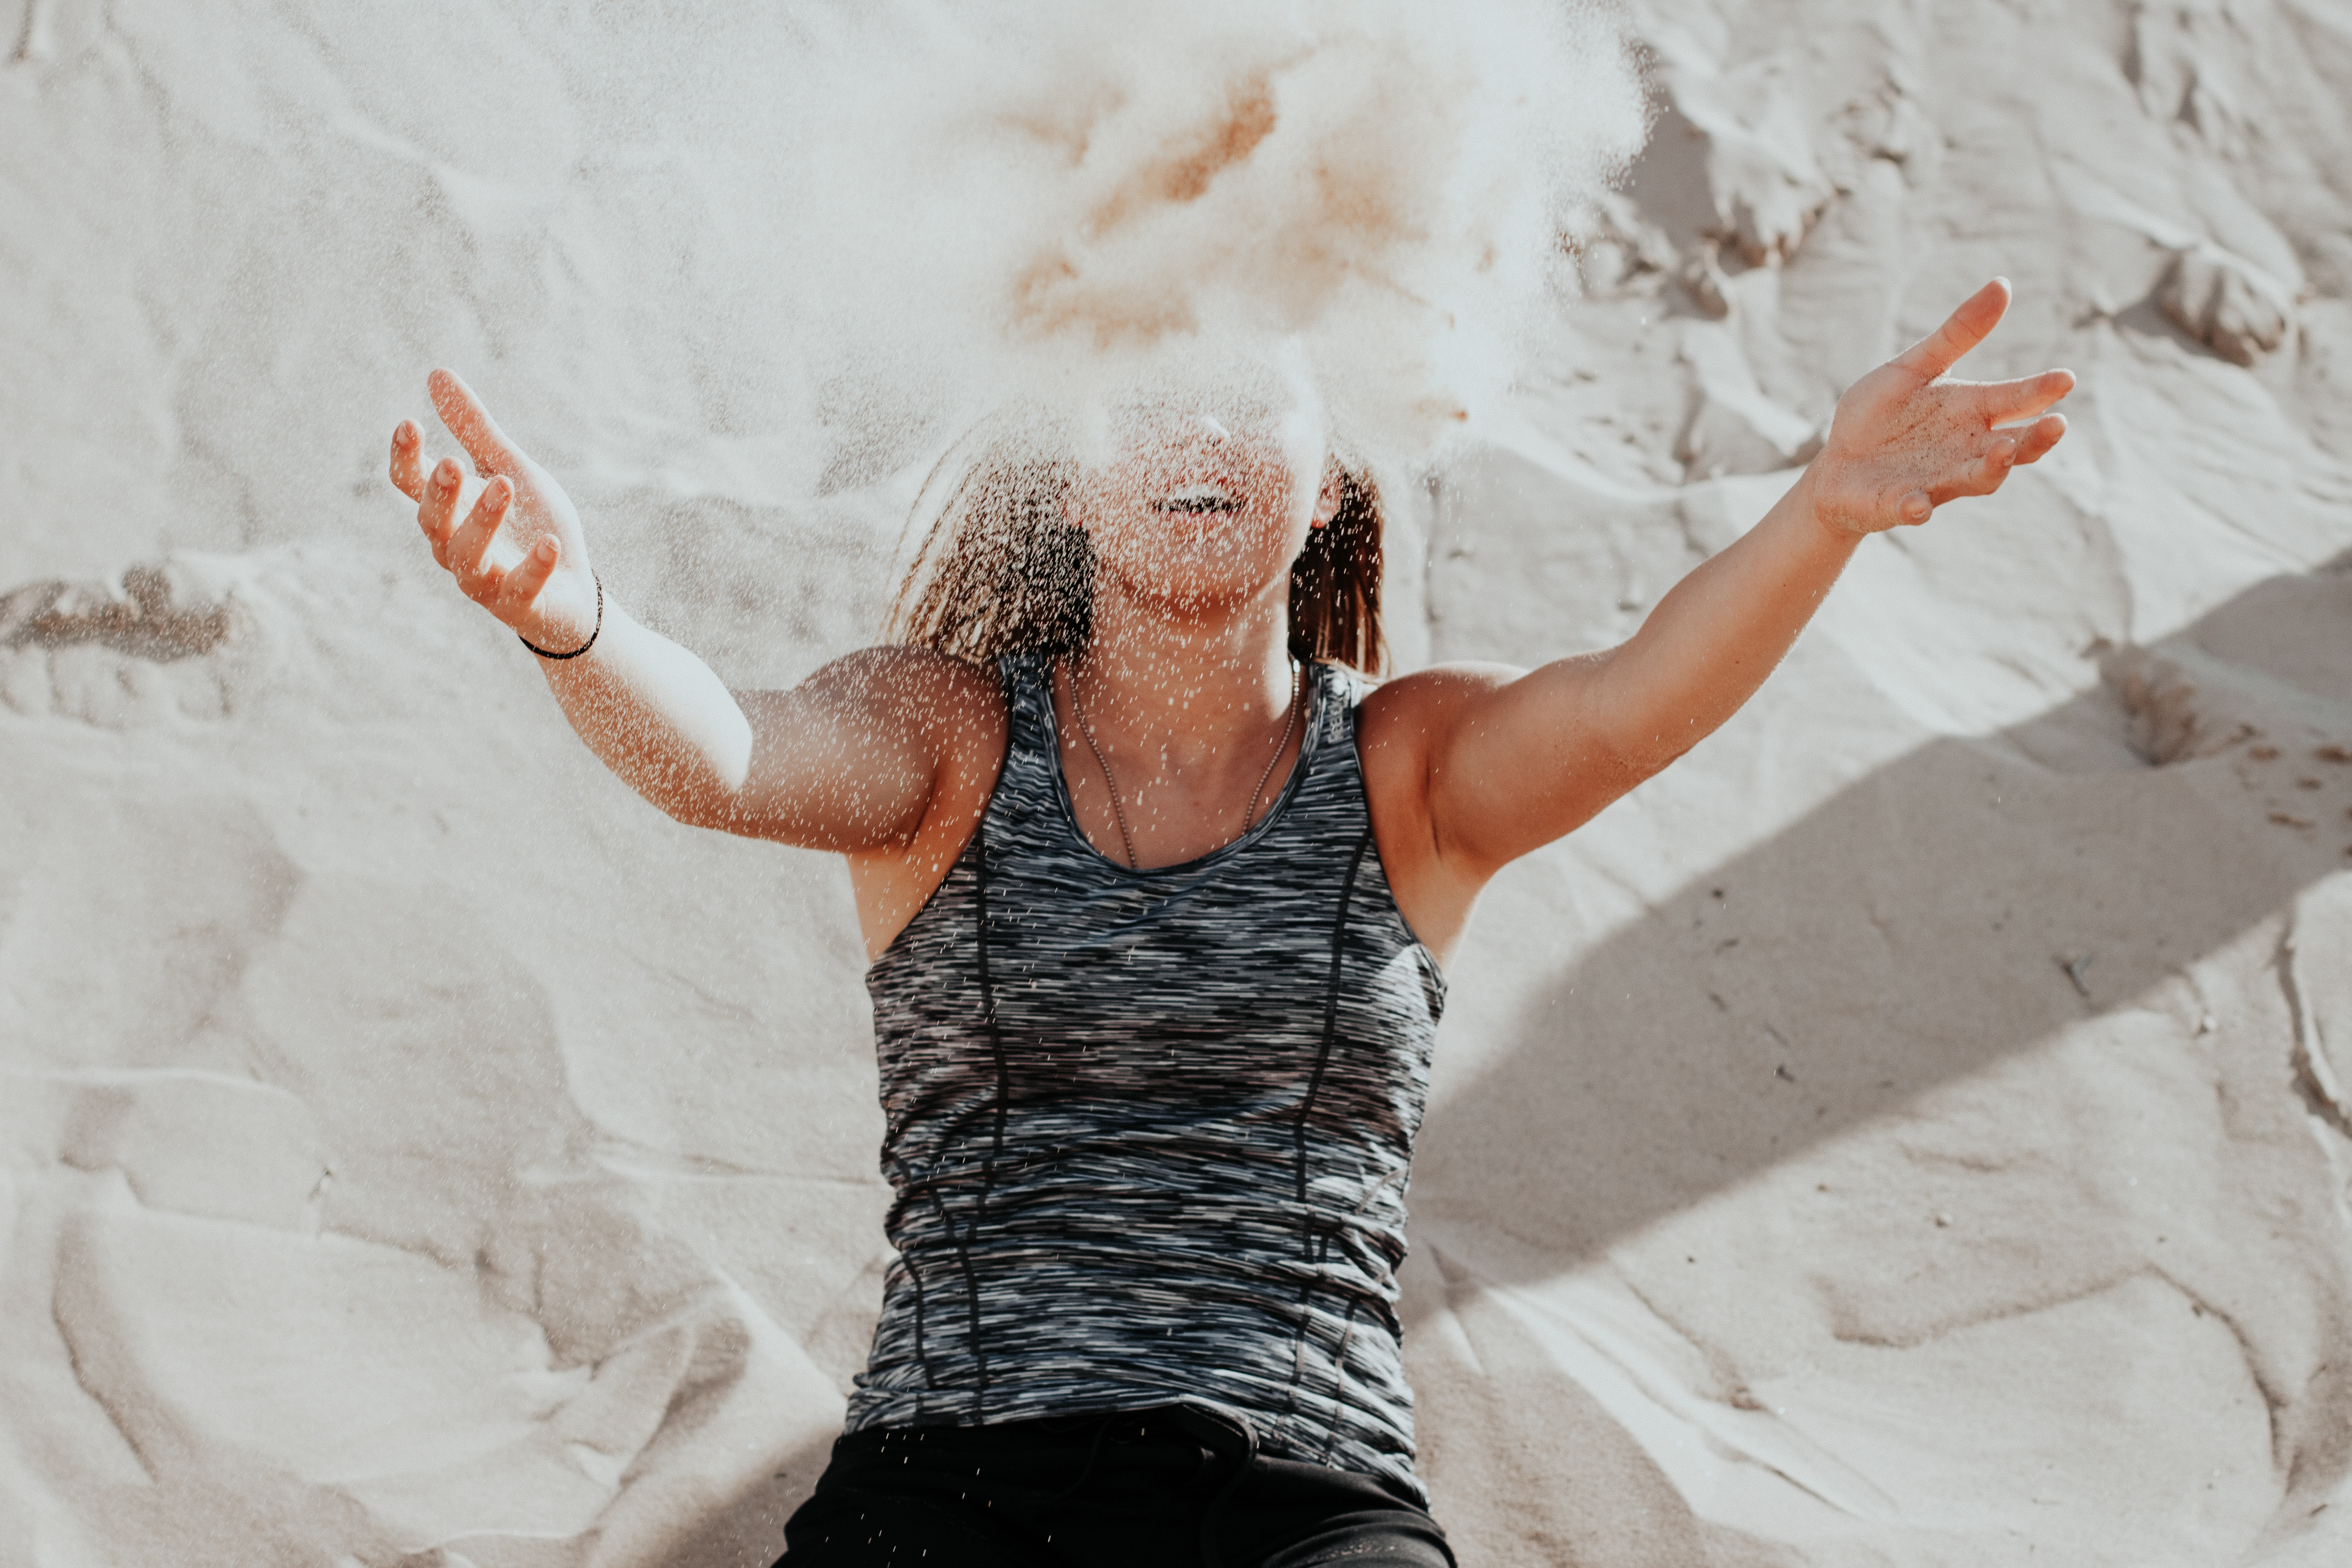 A woman throws sand in front of her face at Sleeping Bear Dunes National Lakeshore